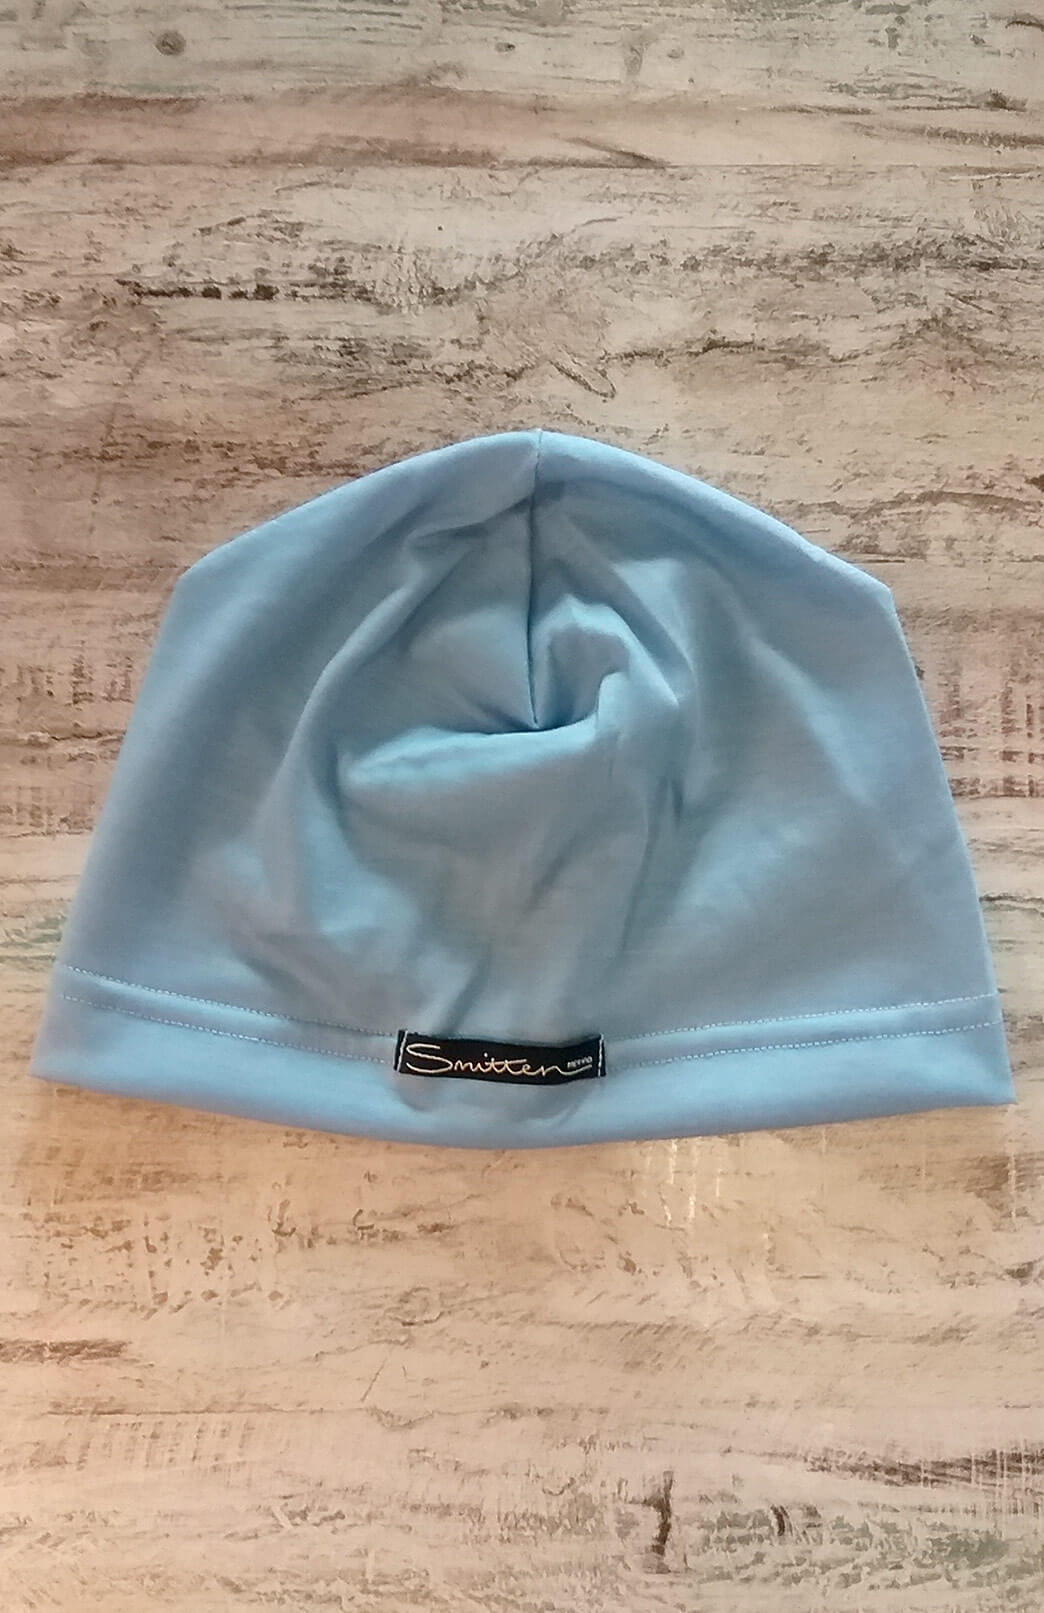 Lightweight Beanie (~170g) - Light Blue Merino Wool Lightweight Unisex Beanie for Bike Riding and Outdoor Sports - Smitten Merino Tasmania Australia